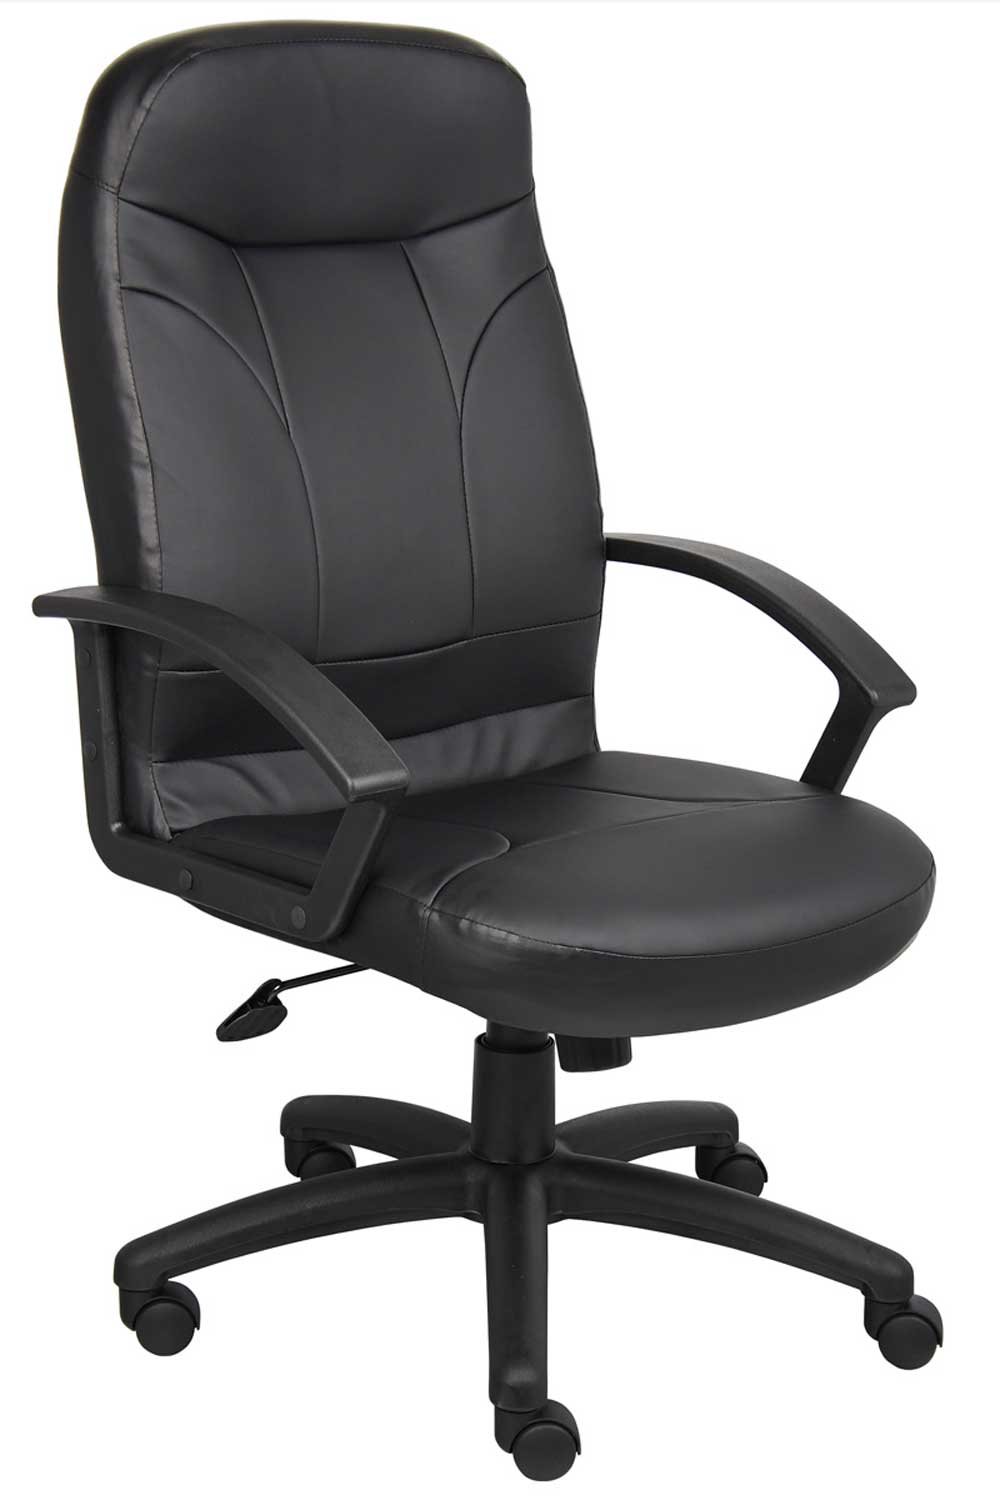 BOSS High Back Black Leather Rotate Office Chair